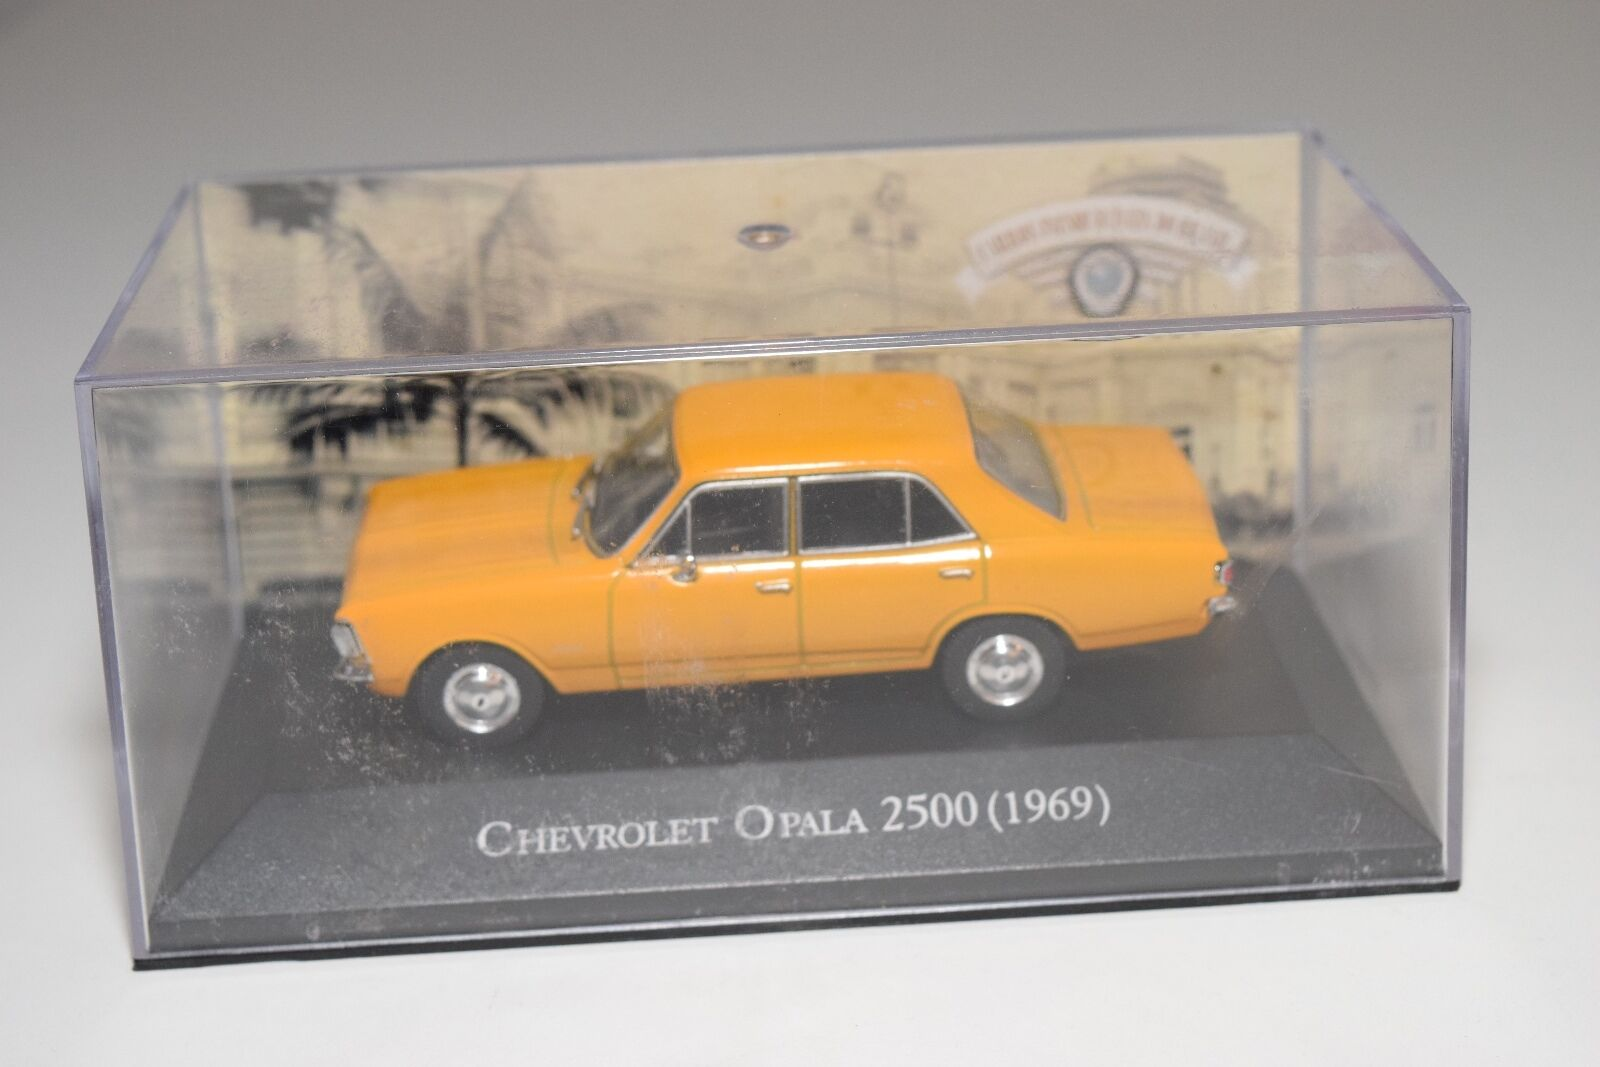 . ALTAYA IXO CHEVROLET OPALA 2500 1969 orange-YELLOW MINT BOXED